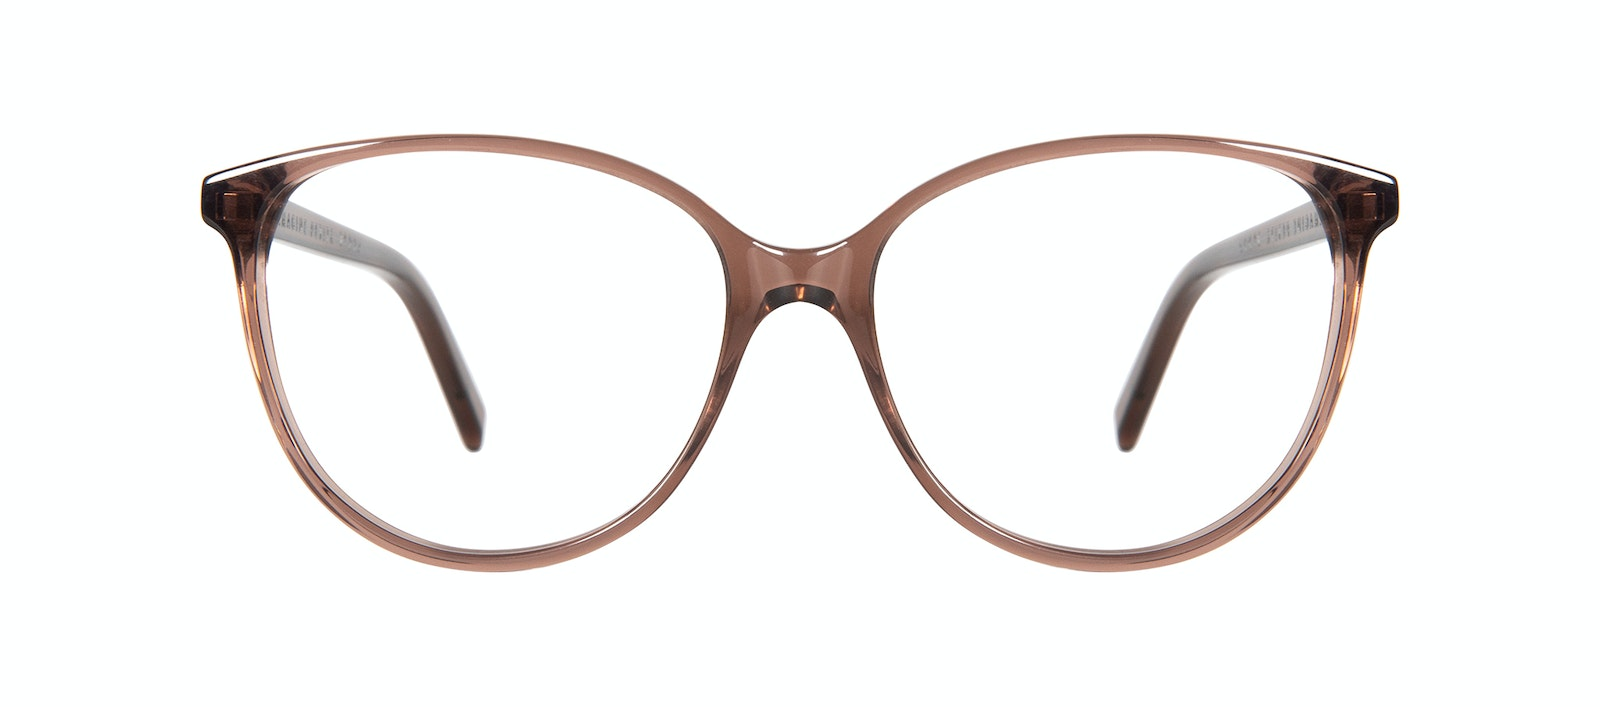 Affordable Fashion Glasses Round Eyeglasses Women Imagine Petite Terra Front